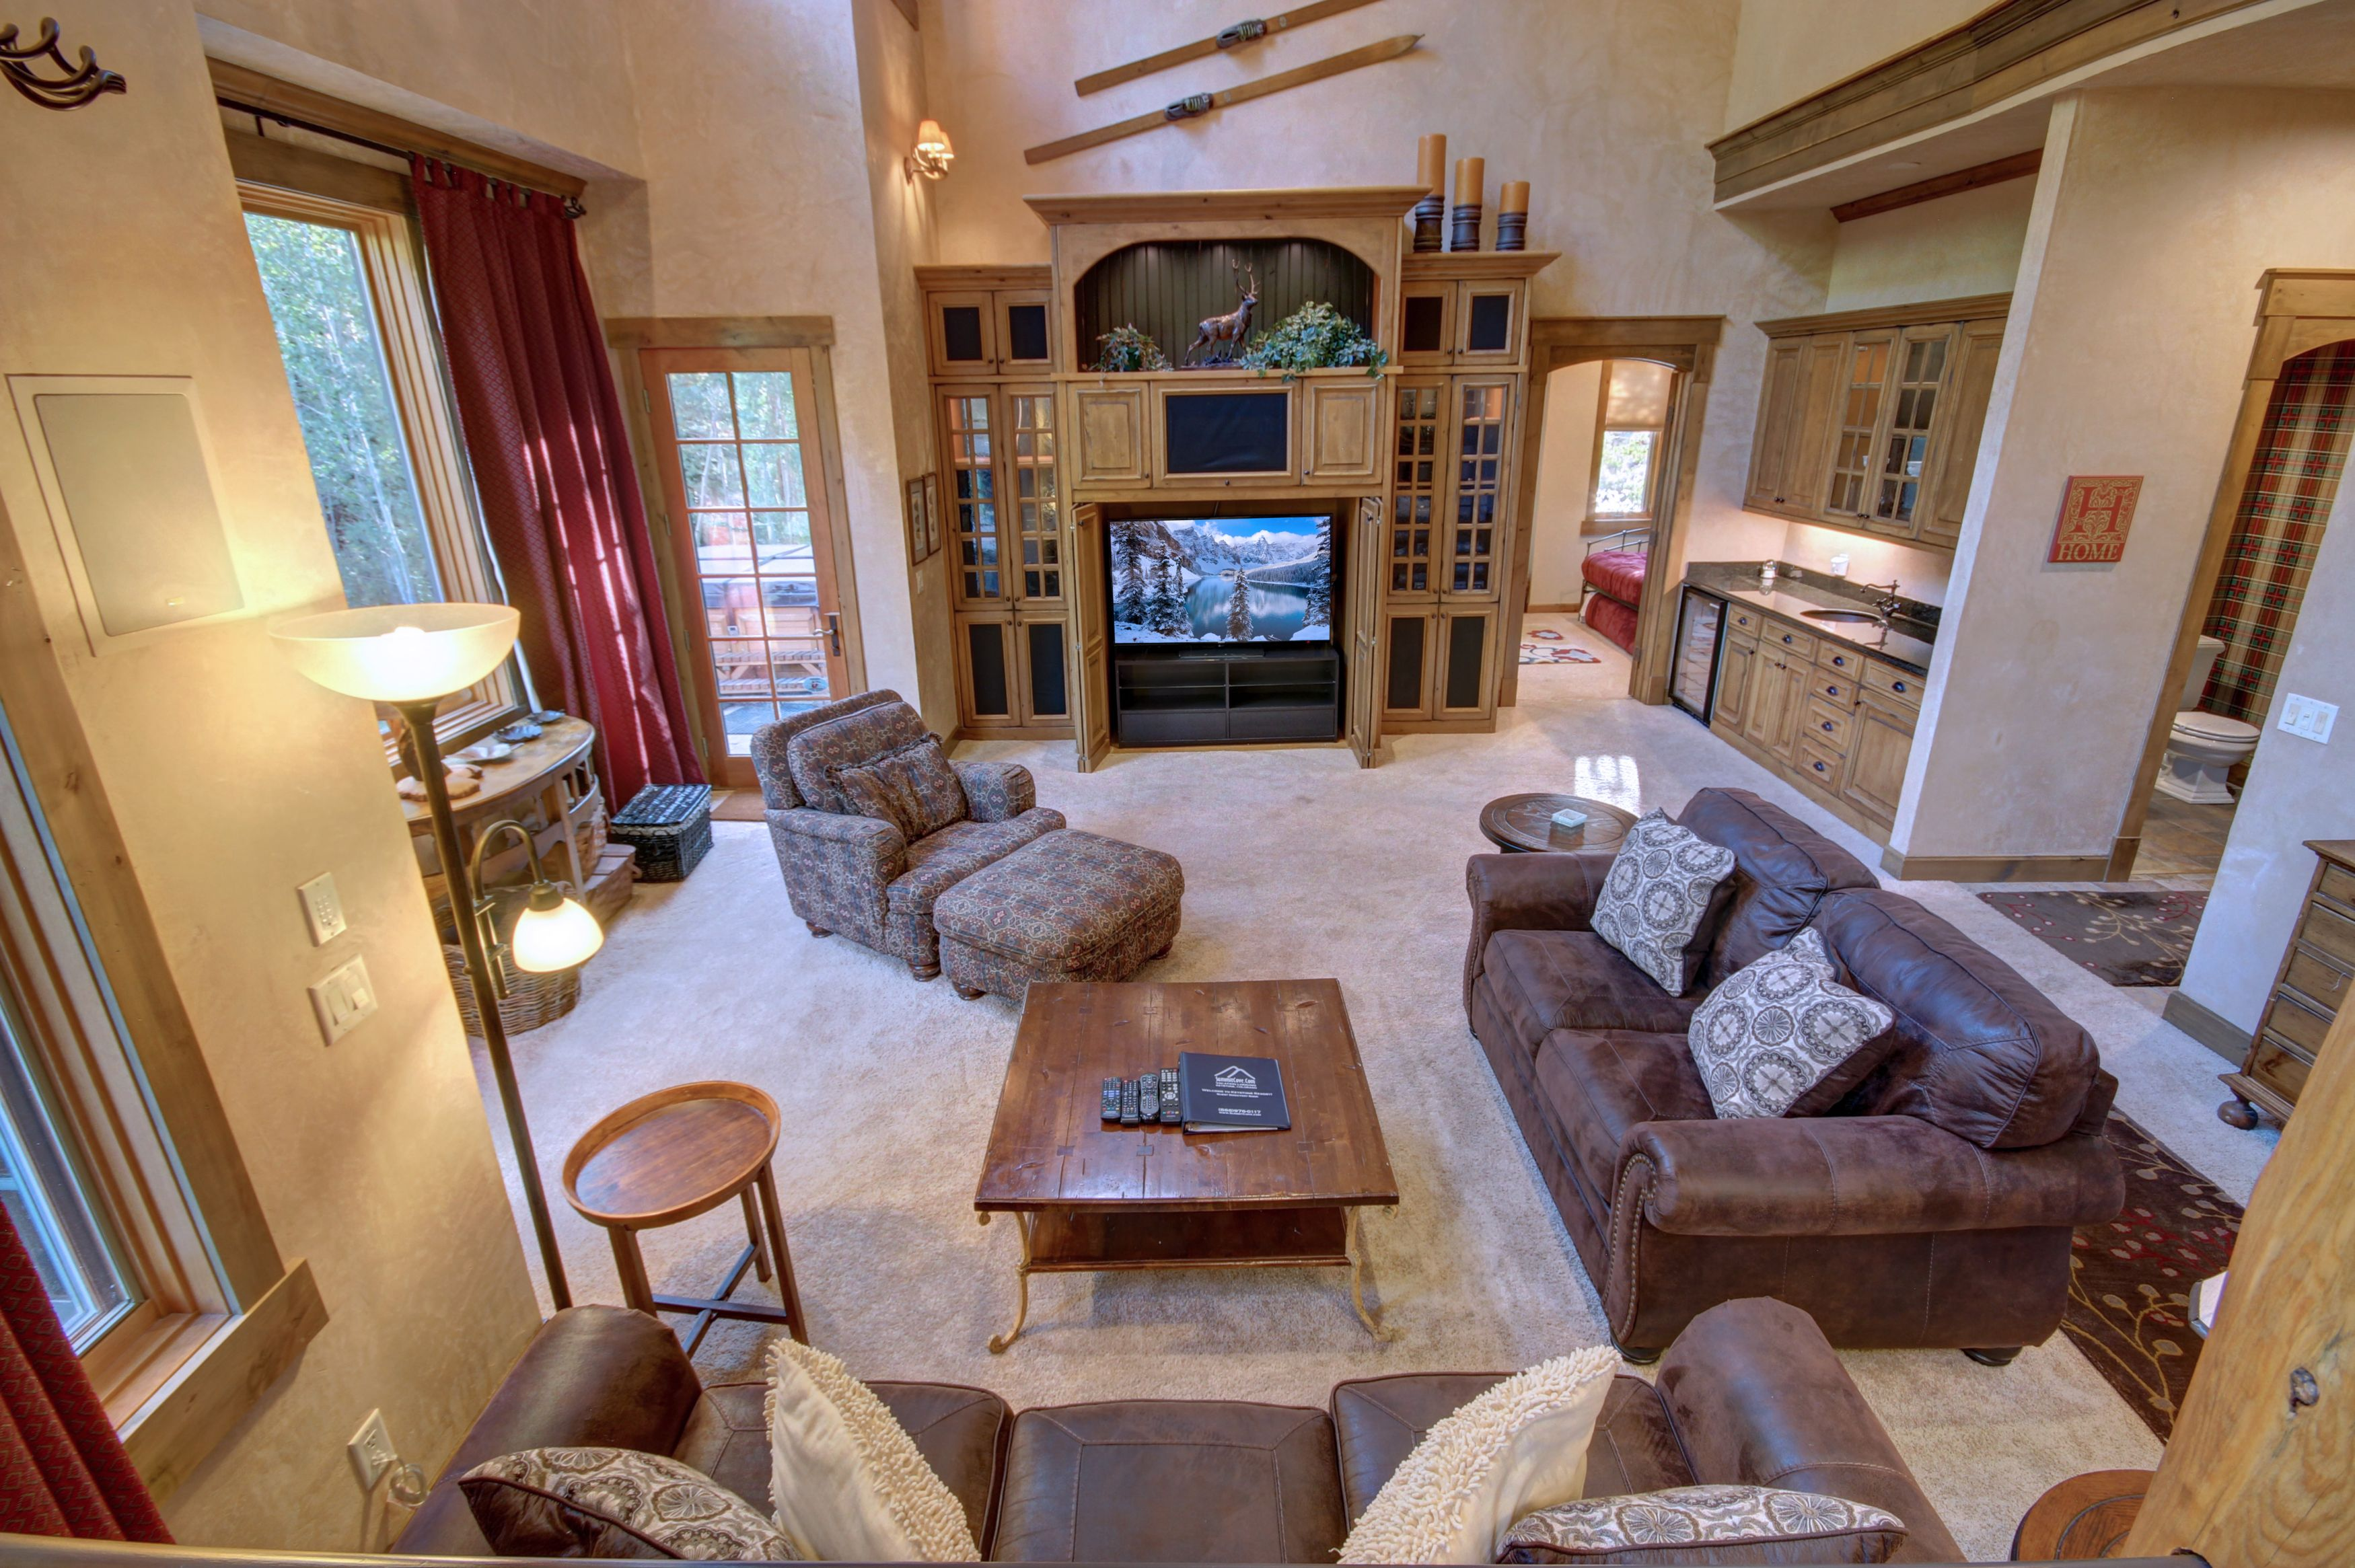 Living room with amazing leather couches